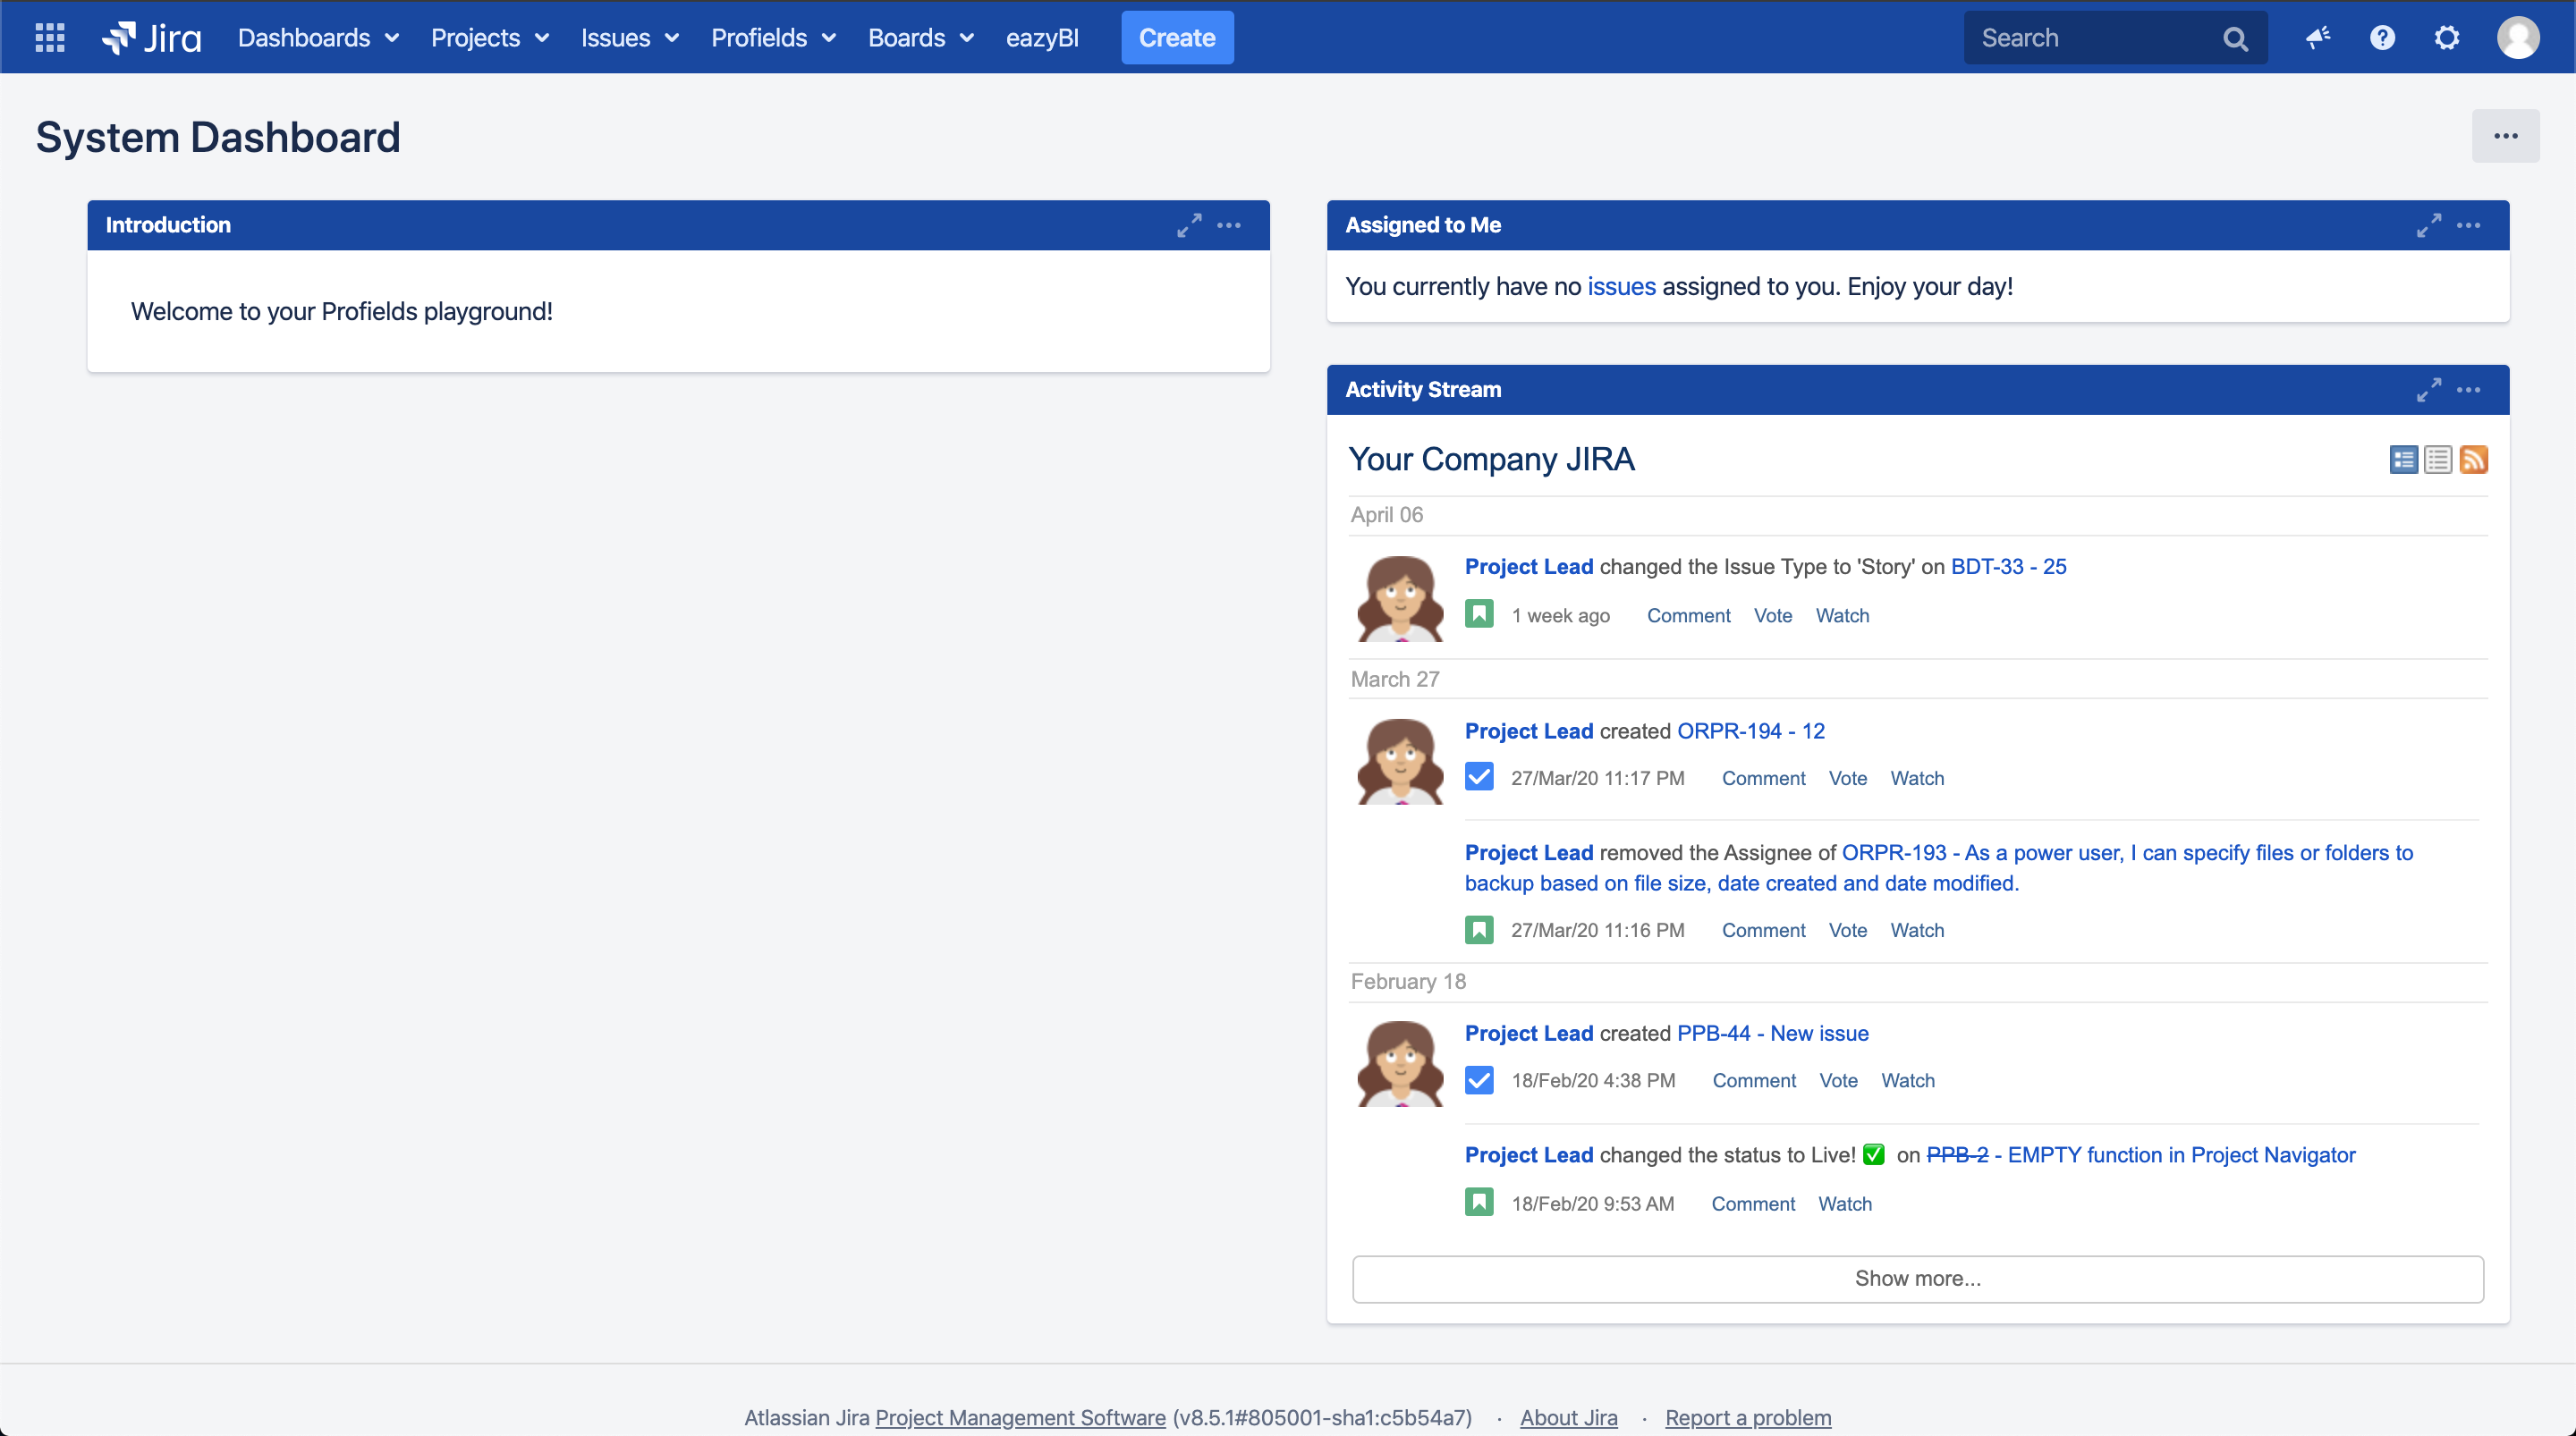 This how a default Jira dashboard looks